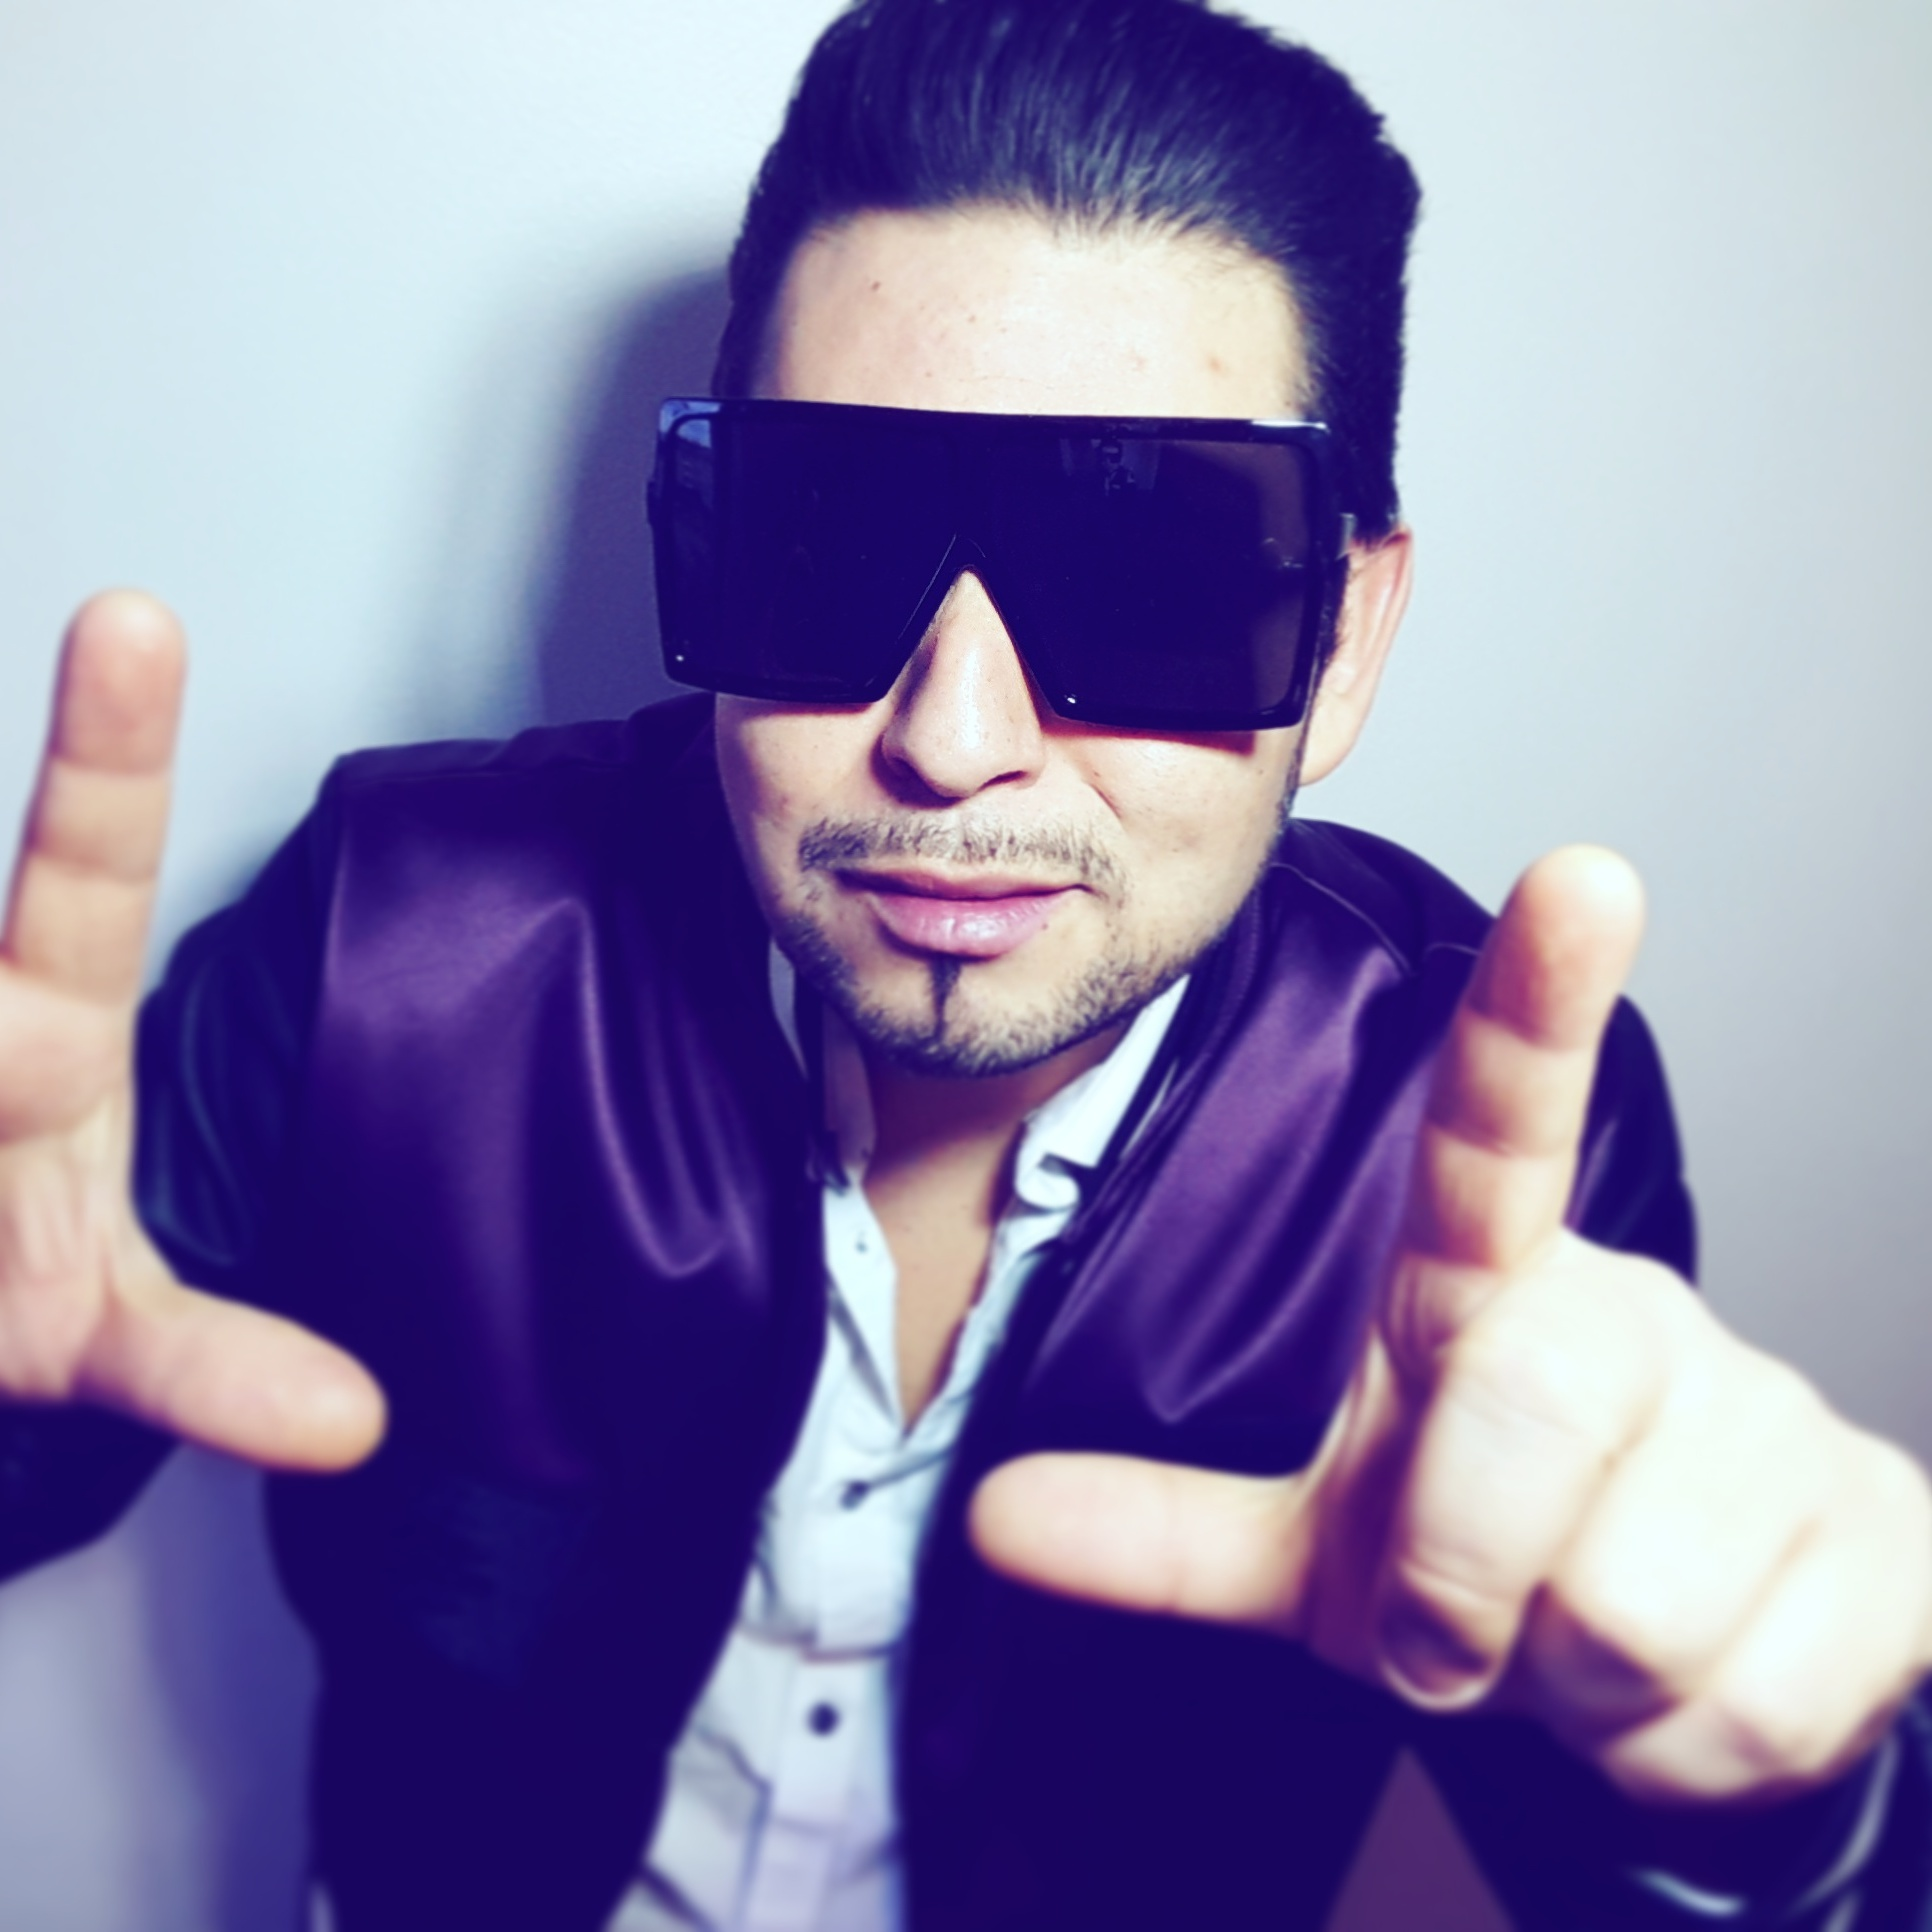 """Latin Artist Mr. Melo Triumphs In Asia As His Single """"Delicia Tchu Tcha Tcha"""" Goes Viral On Tencent"""